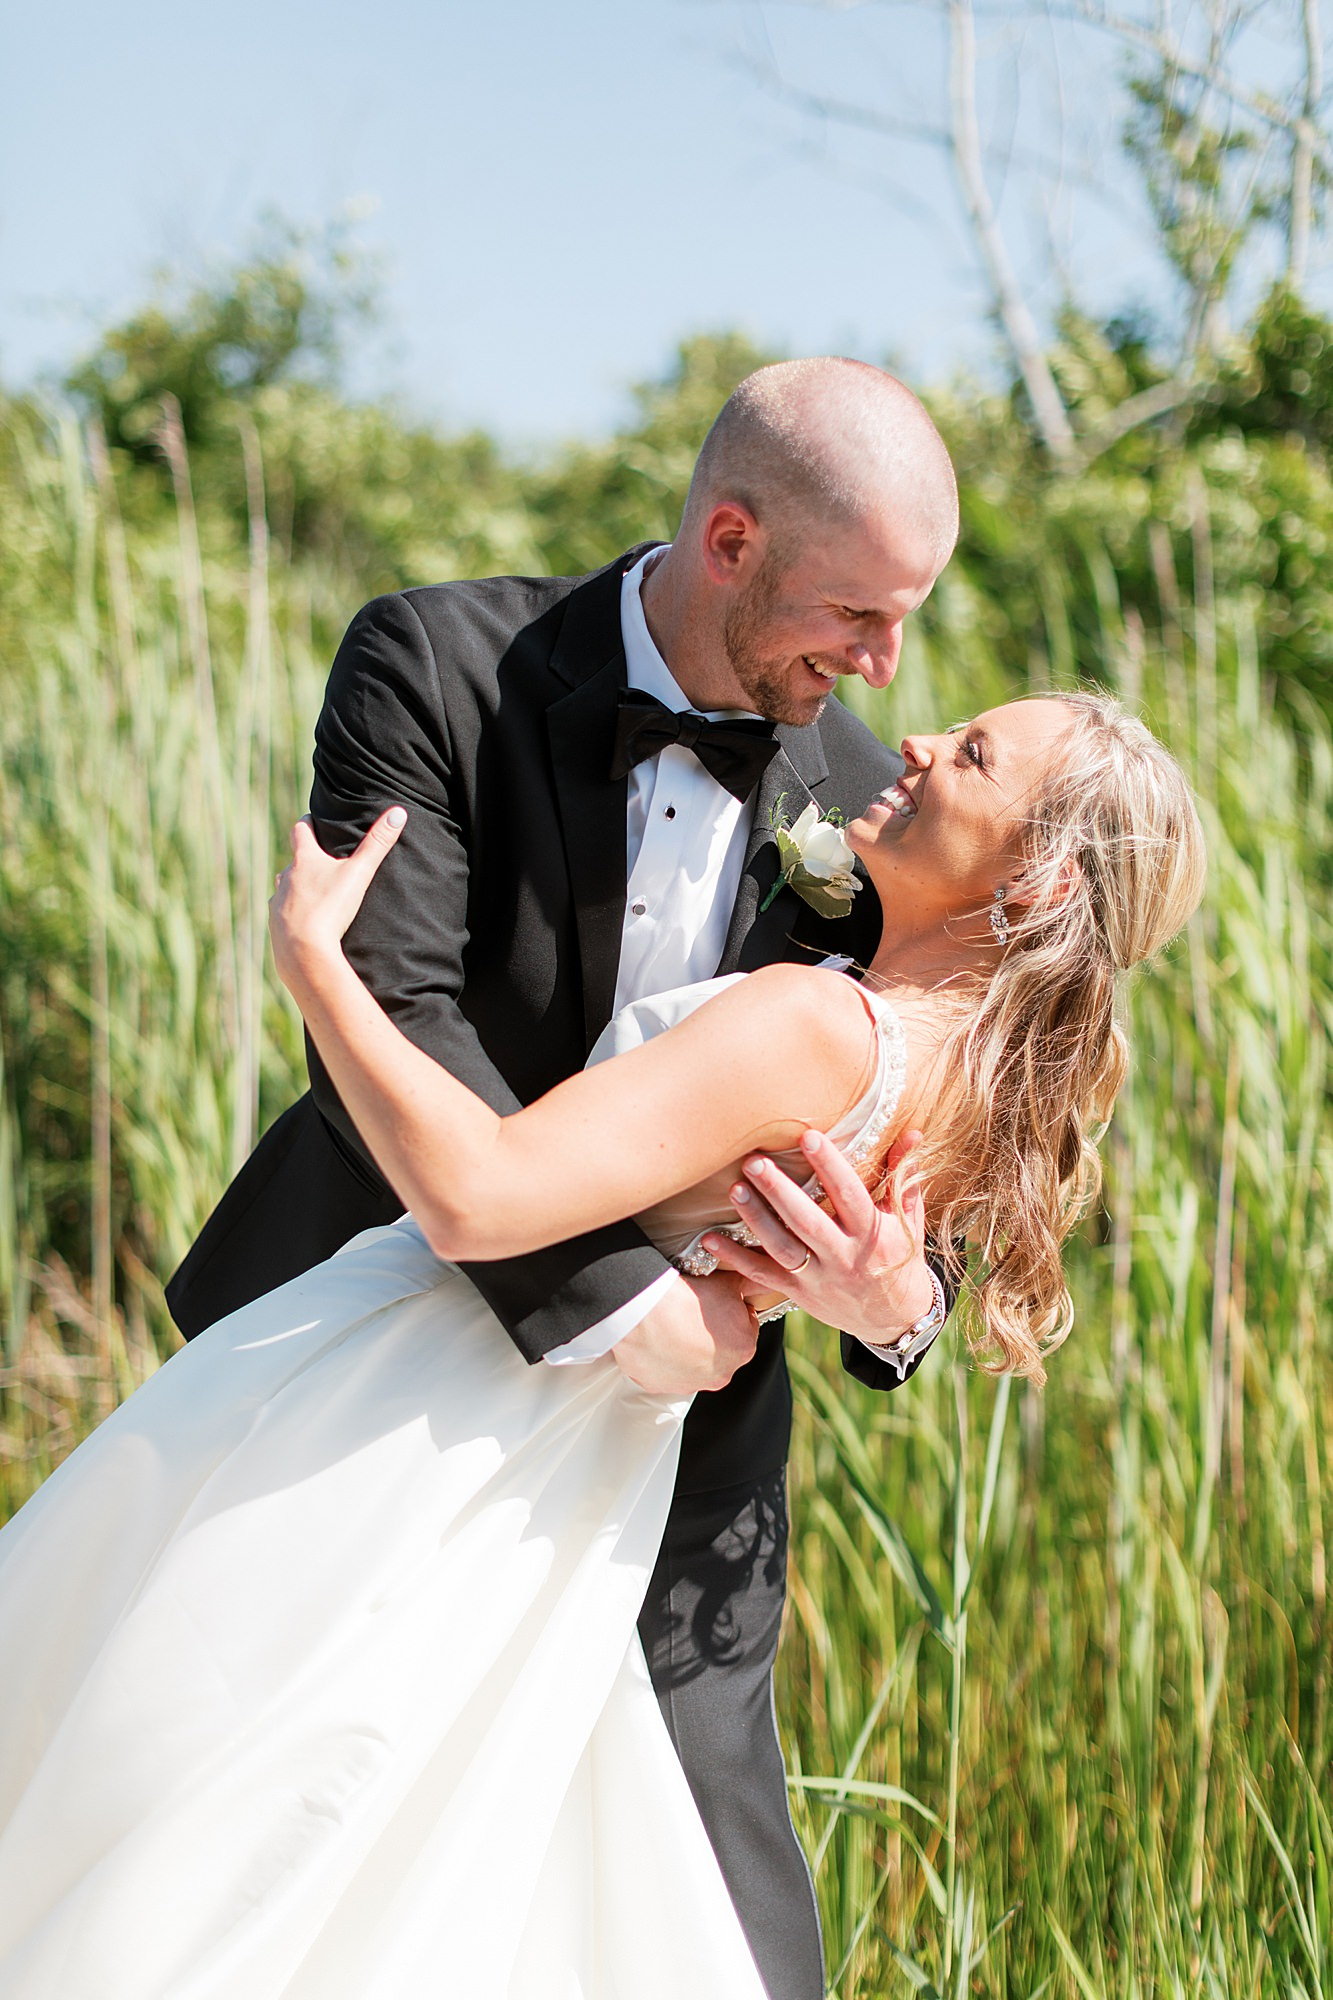 Natural and Vibrant Wedding Photography at the Reeds in Stone Harbor NJ by Magdalena Studios 0041